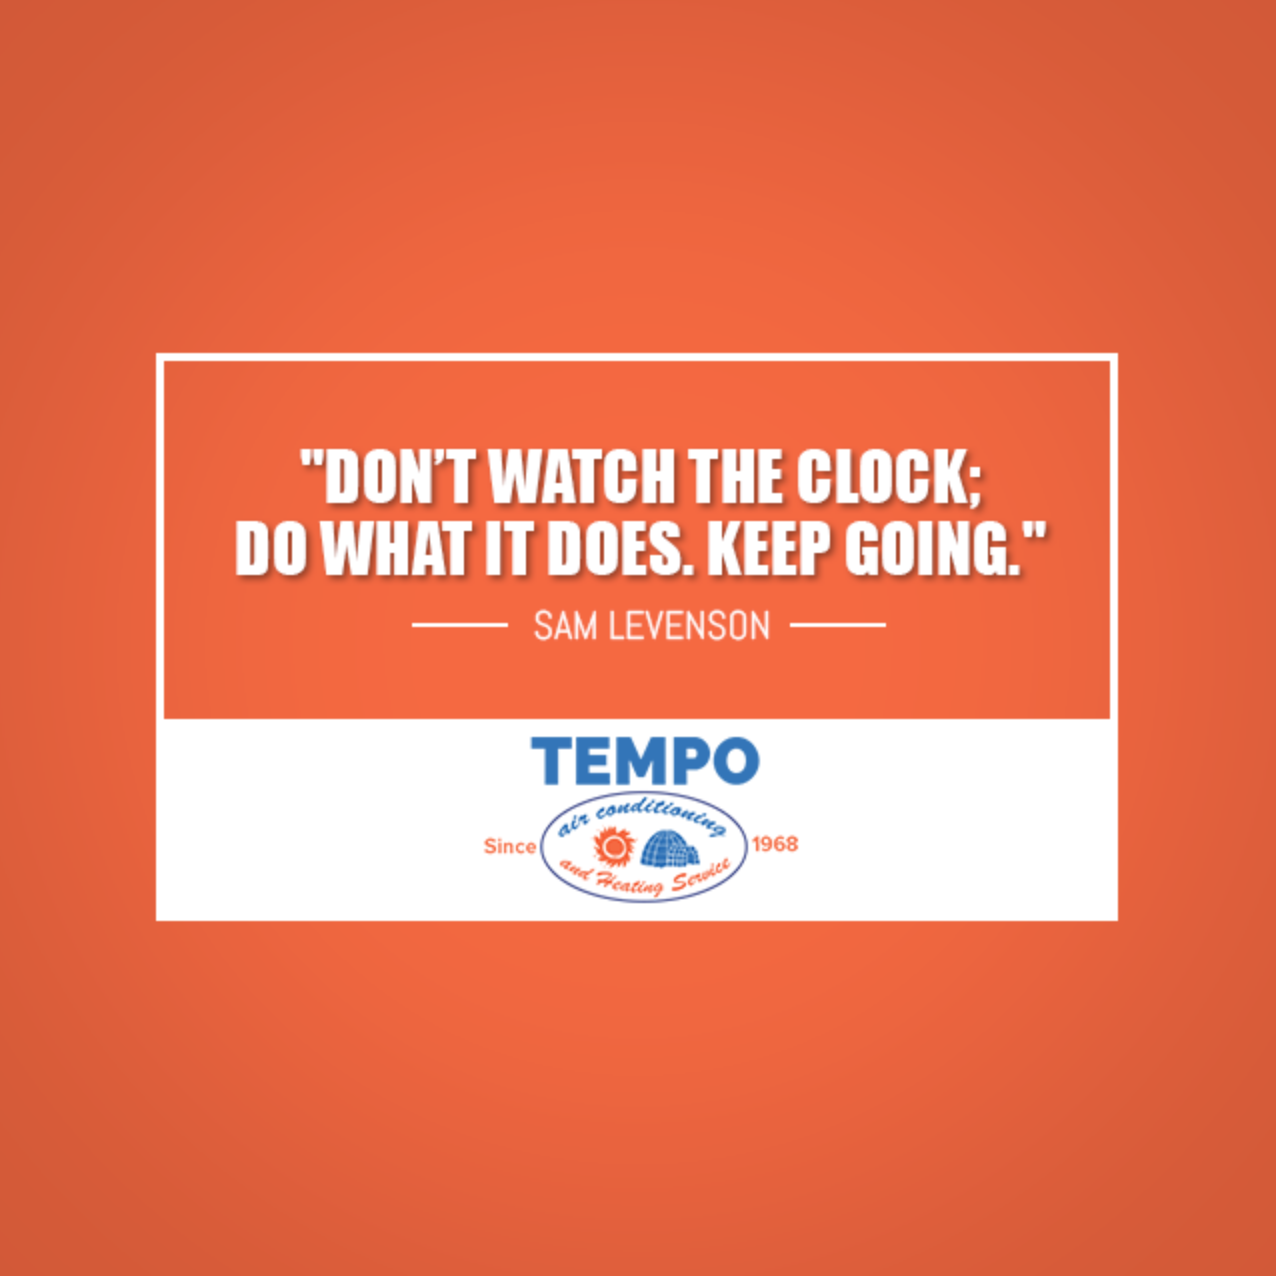 Tempo Air Conditioning image 2